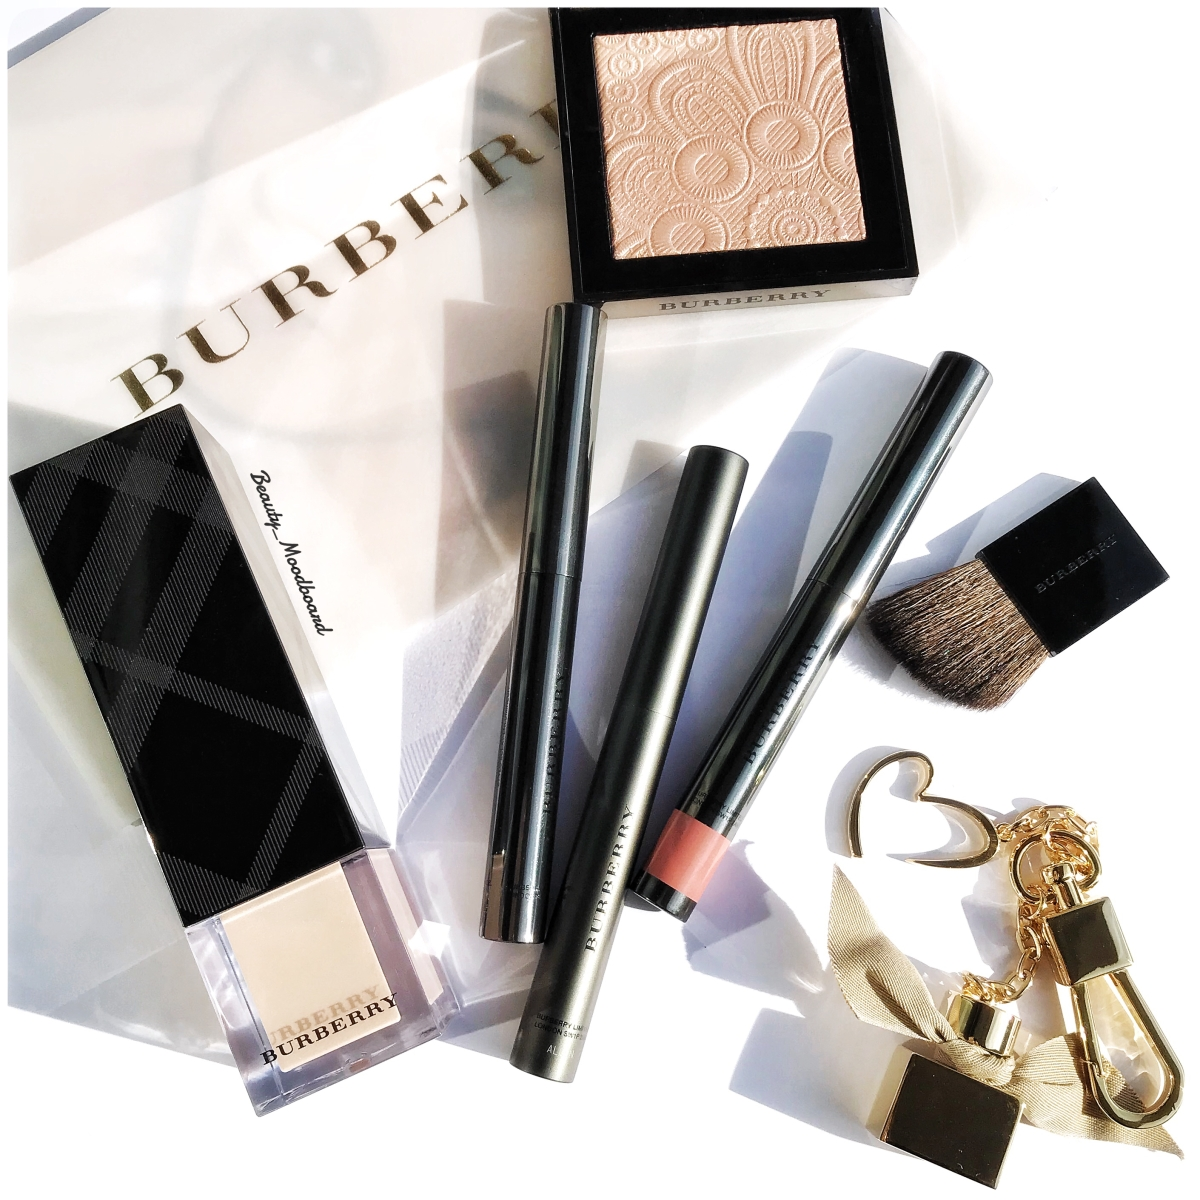 Burberry Beauty Fresh Glow Look : Les essentiels !